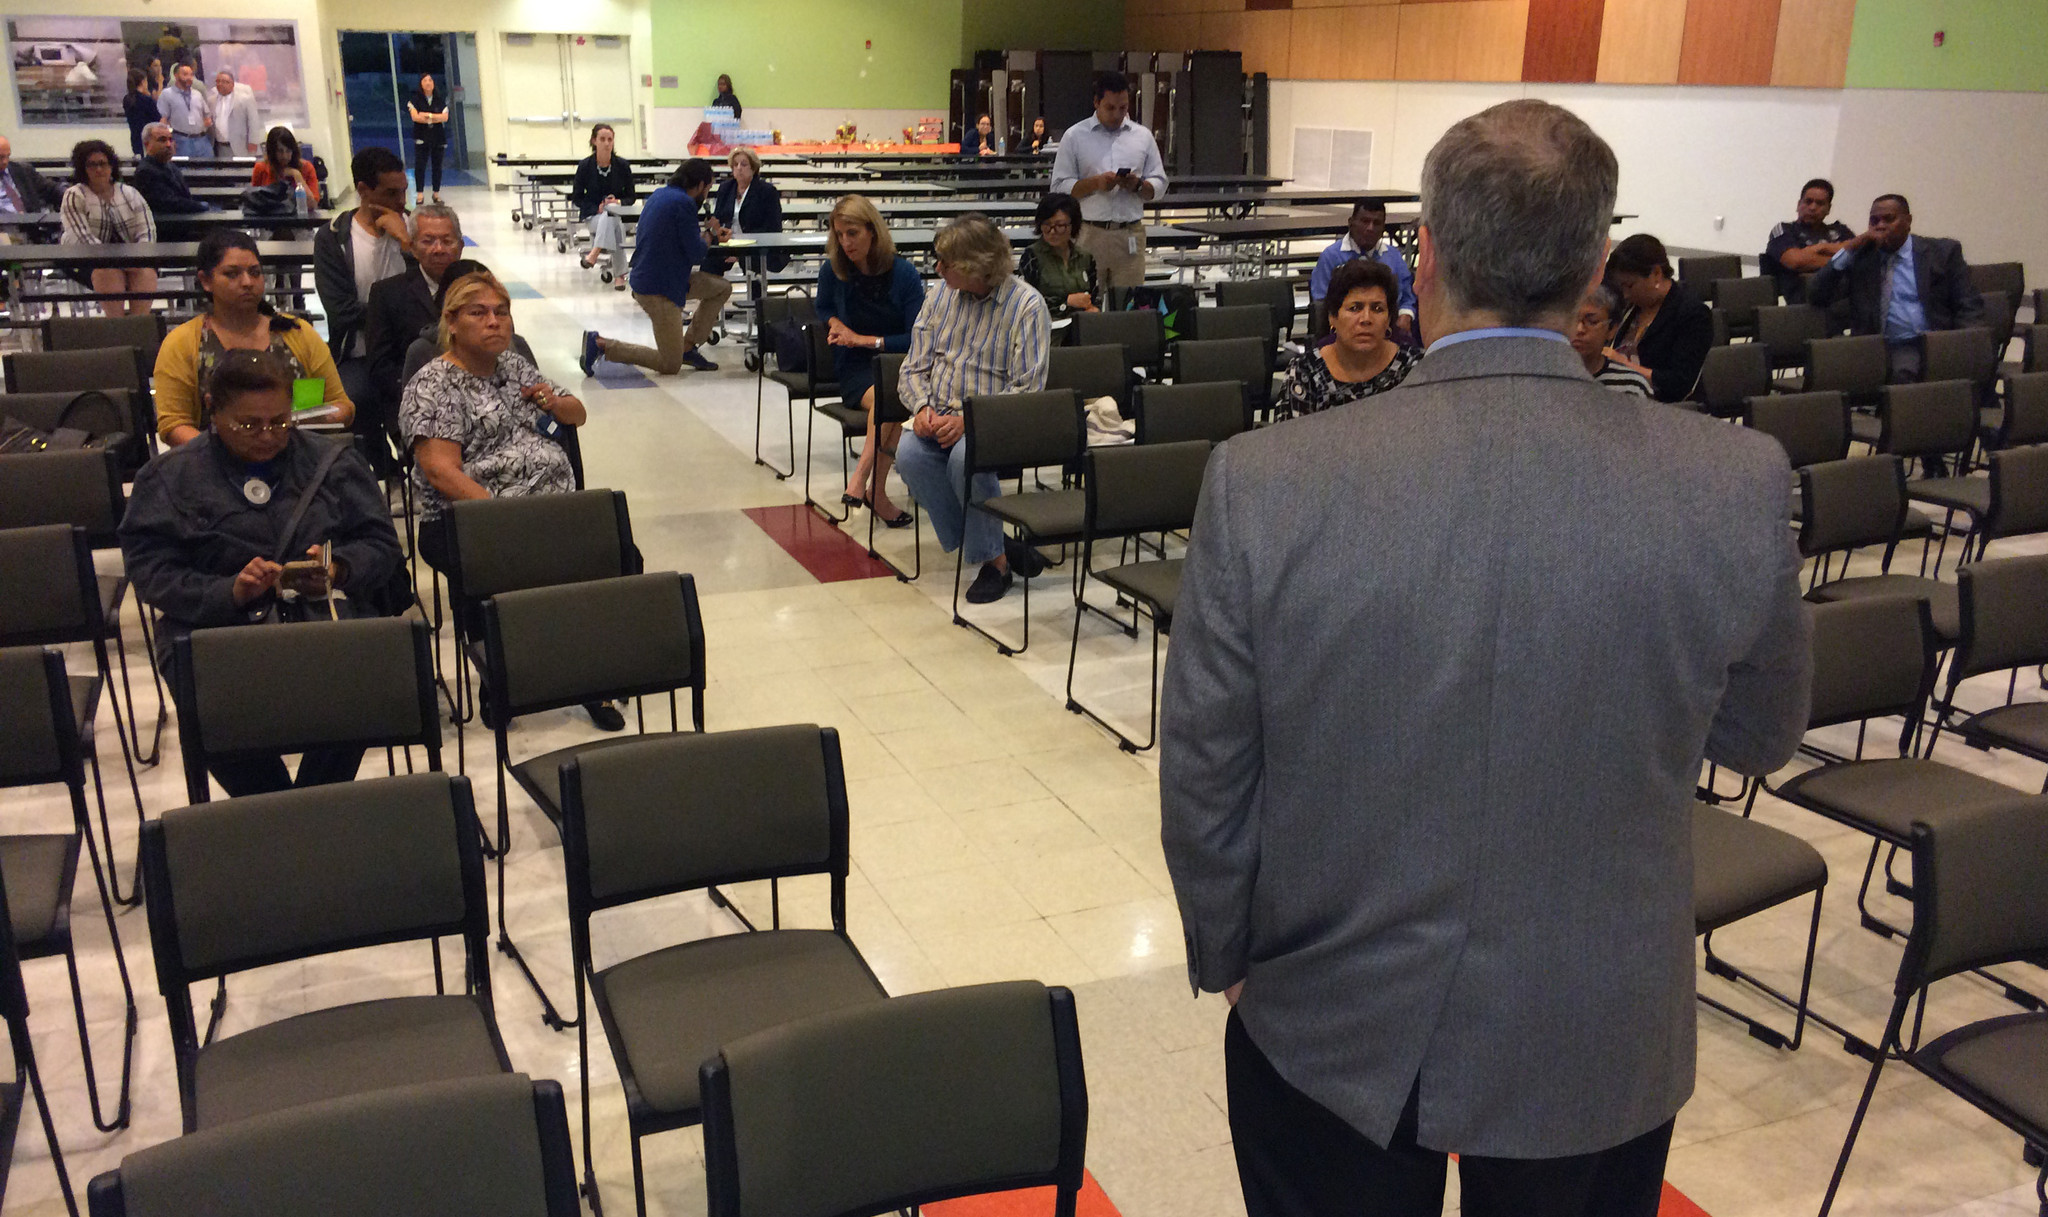 About two dozen people showed up last month to the Roybal Learning Center, just west of downtown, to talk about what they want in a new L.A. schools chief. (Los Angeles Times)